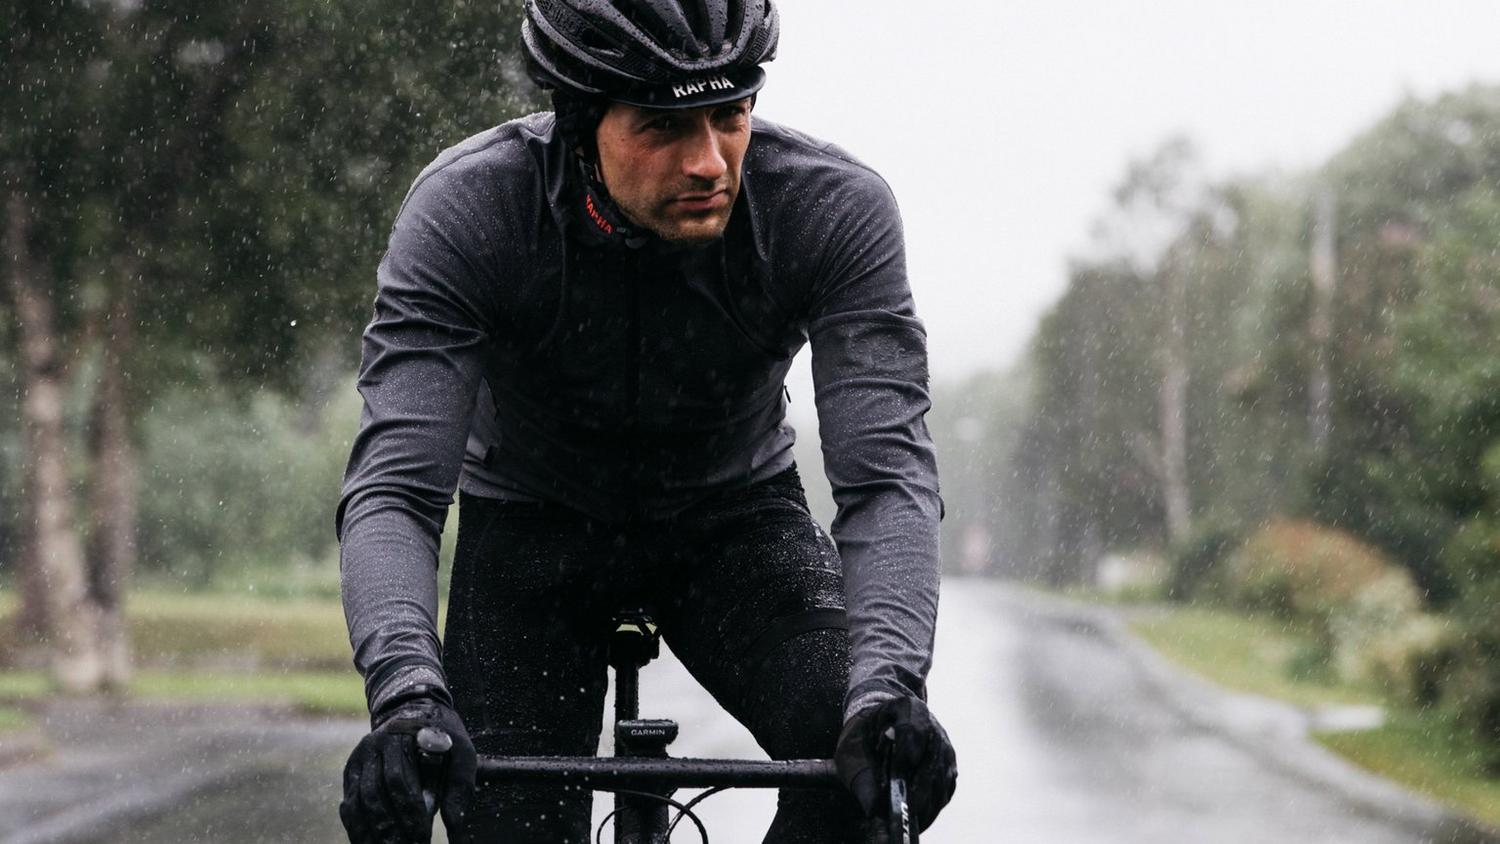 Men's cycling jacket guide